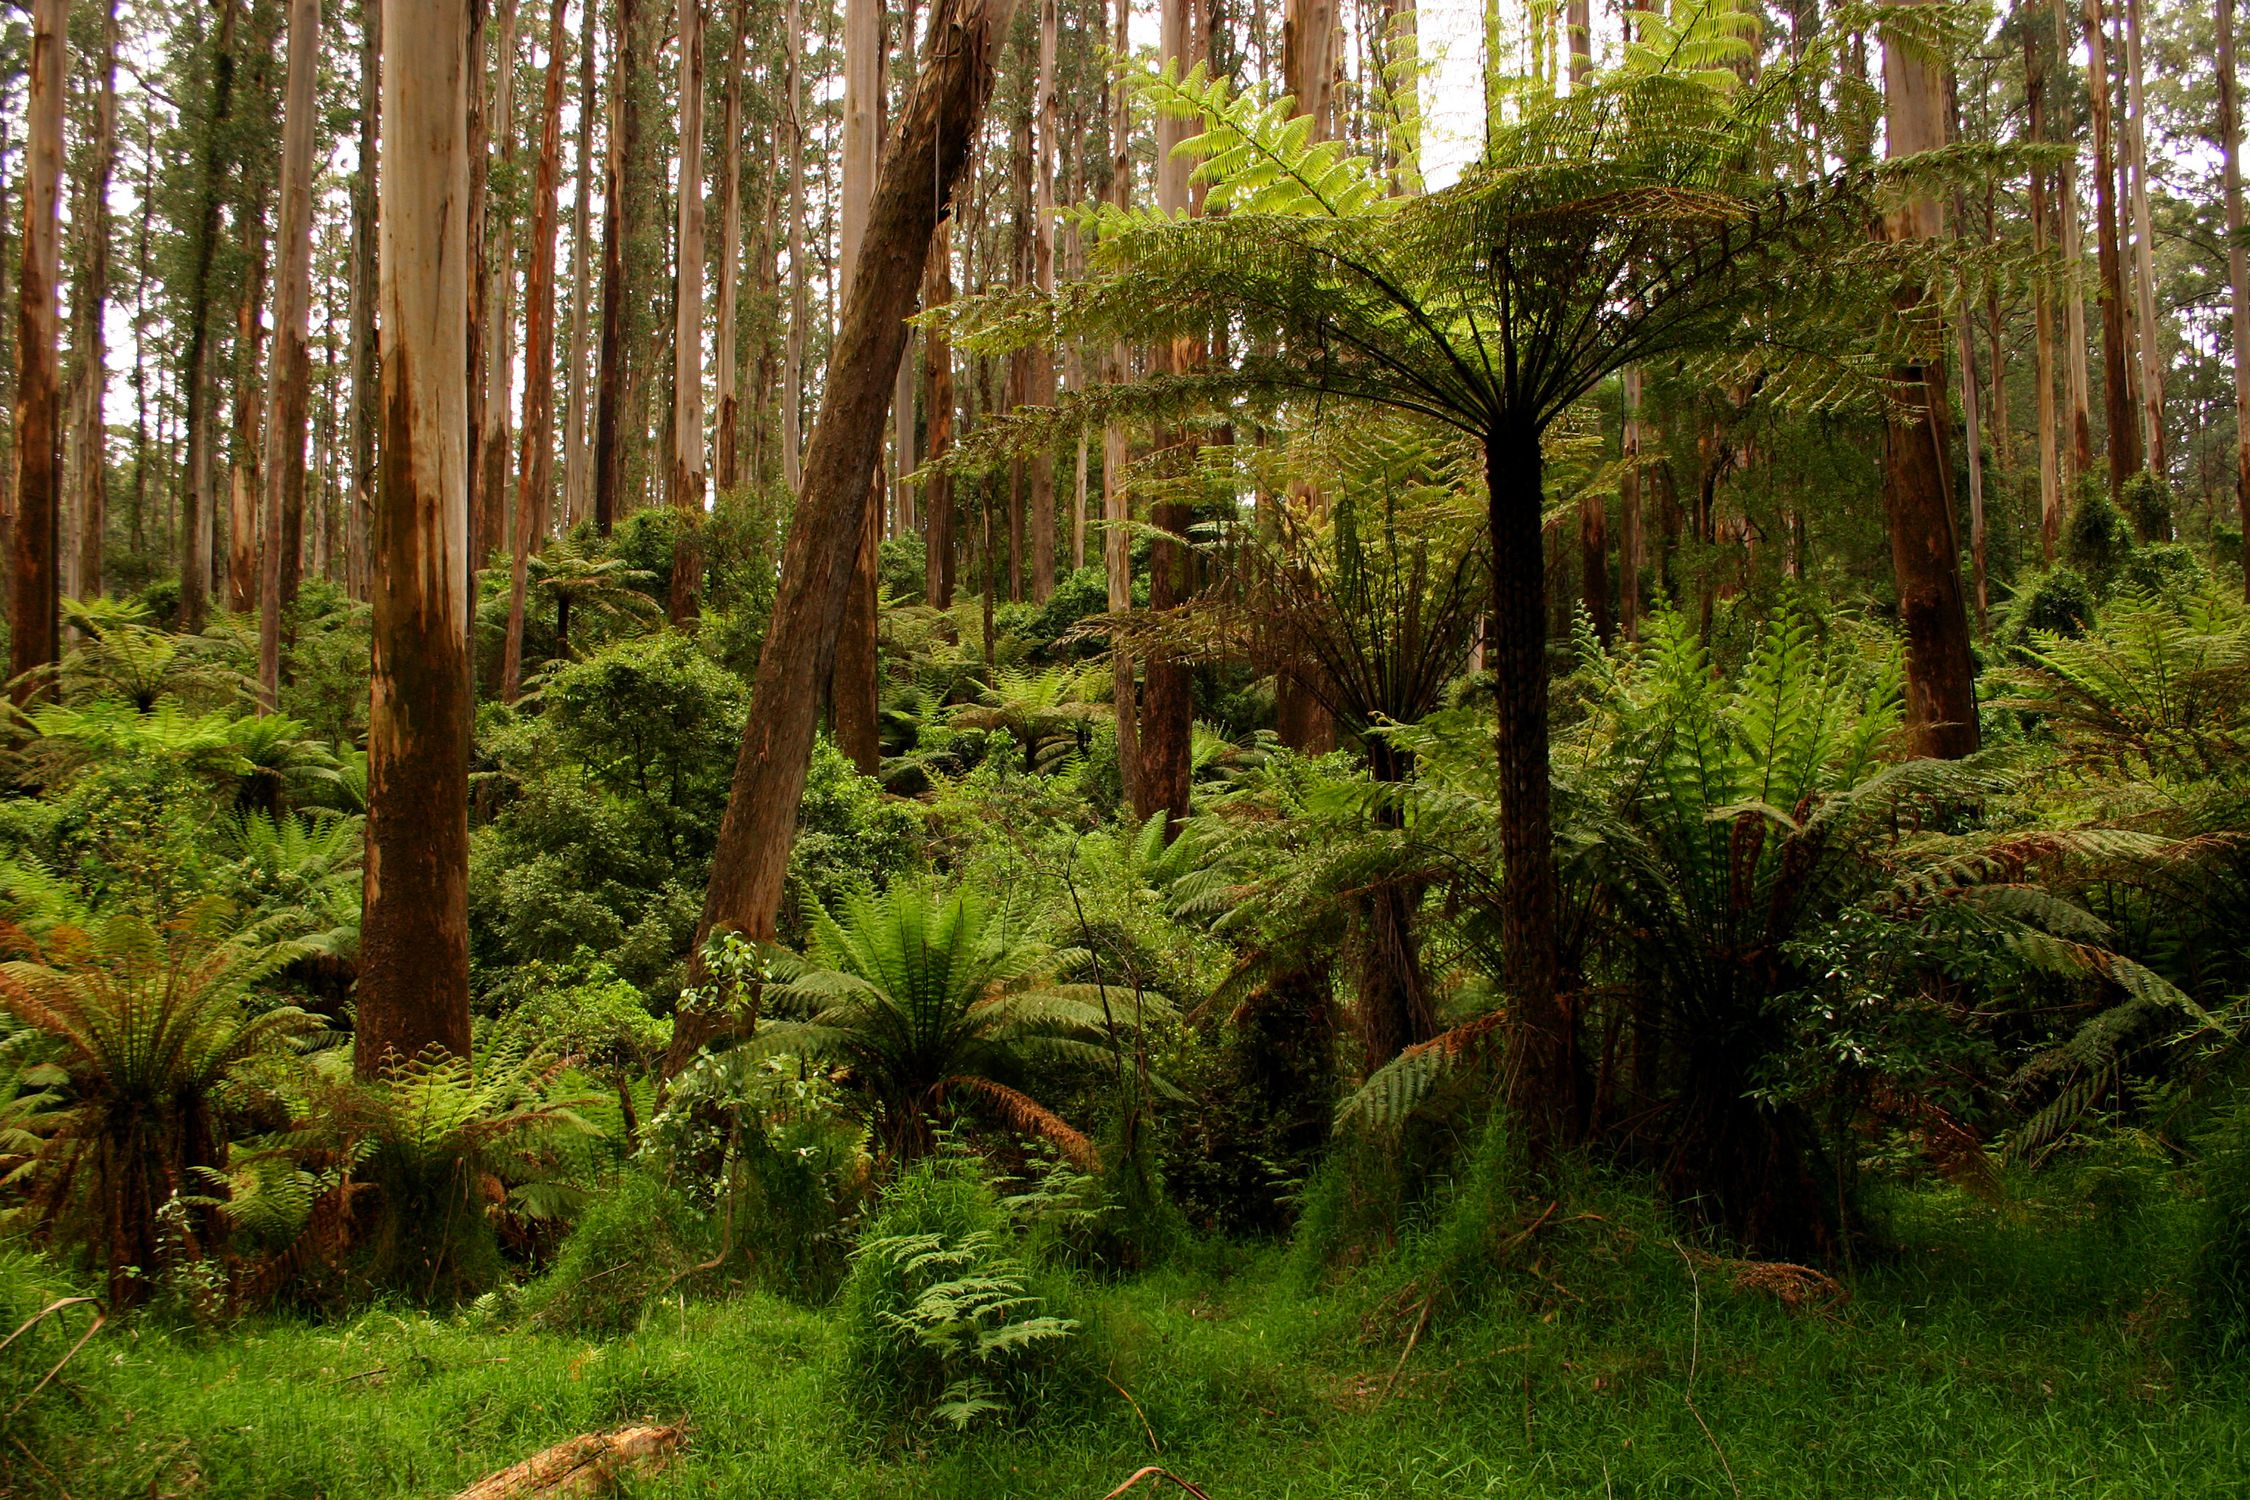 Forests are structured in vertical layers.